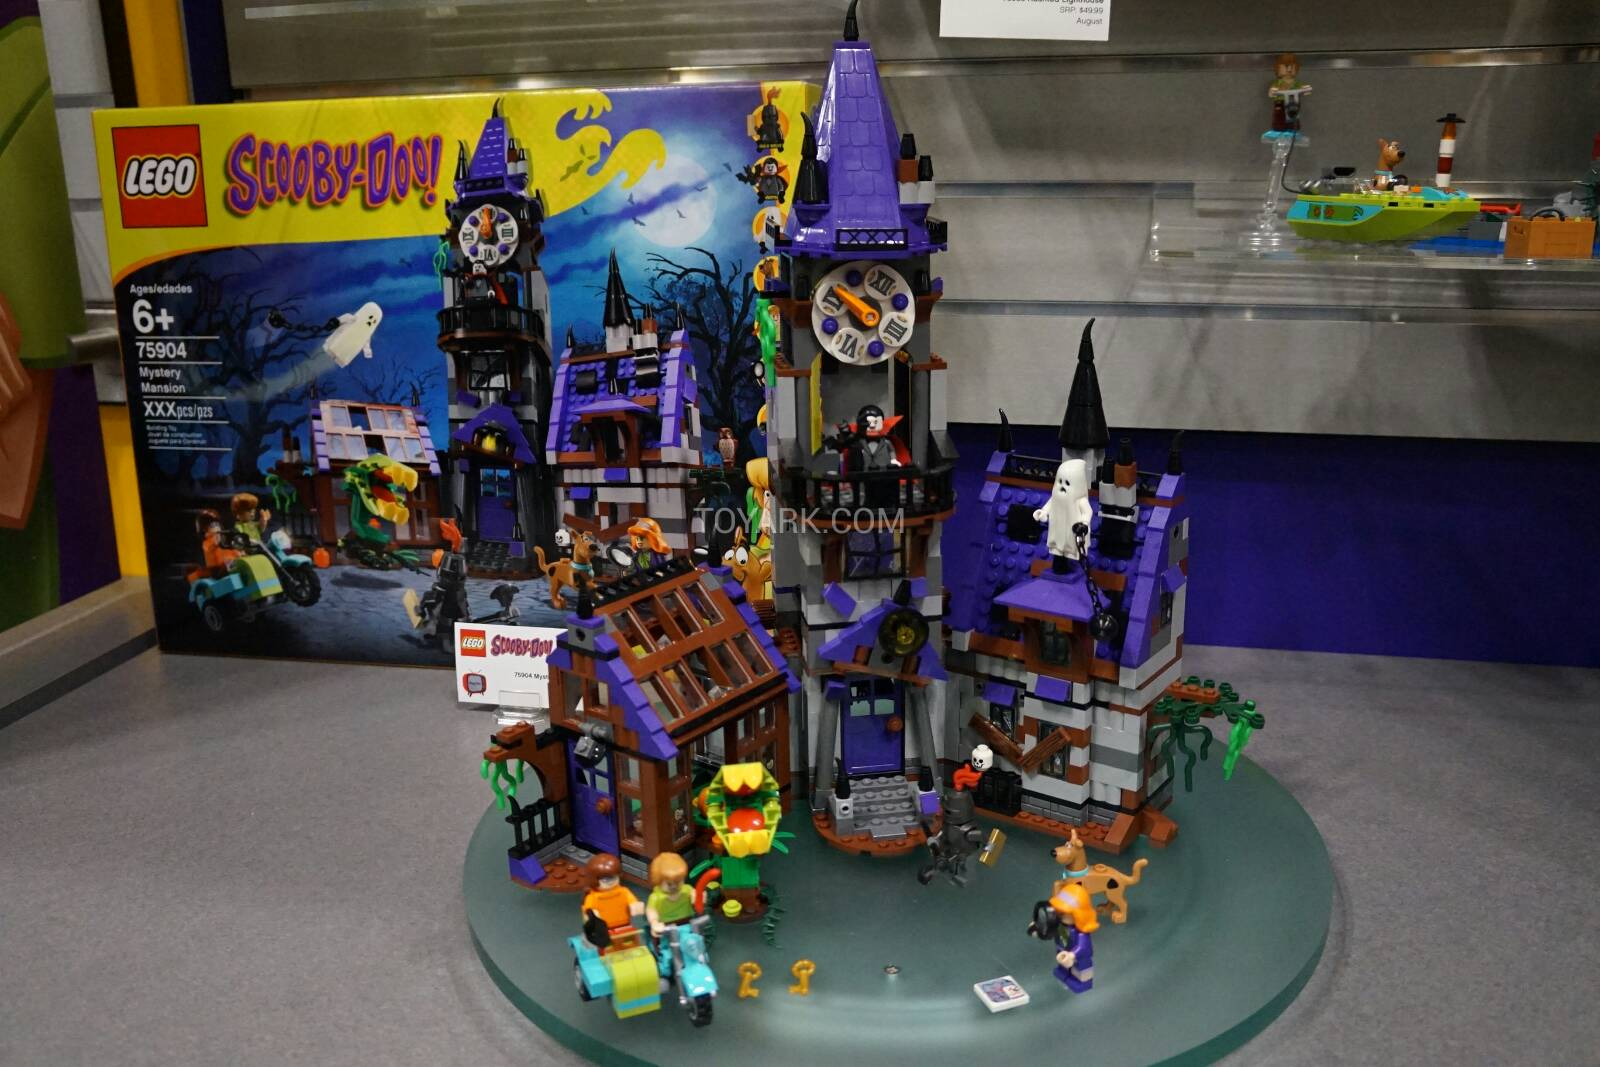 Toy-Fair-2015-LEGO-Scooby-009.jpg